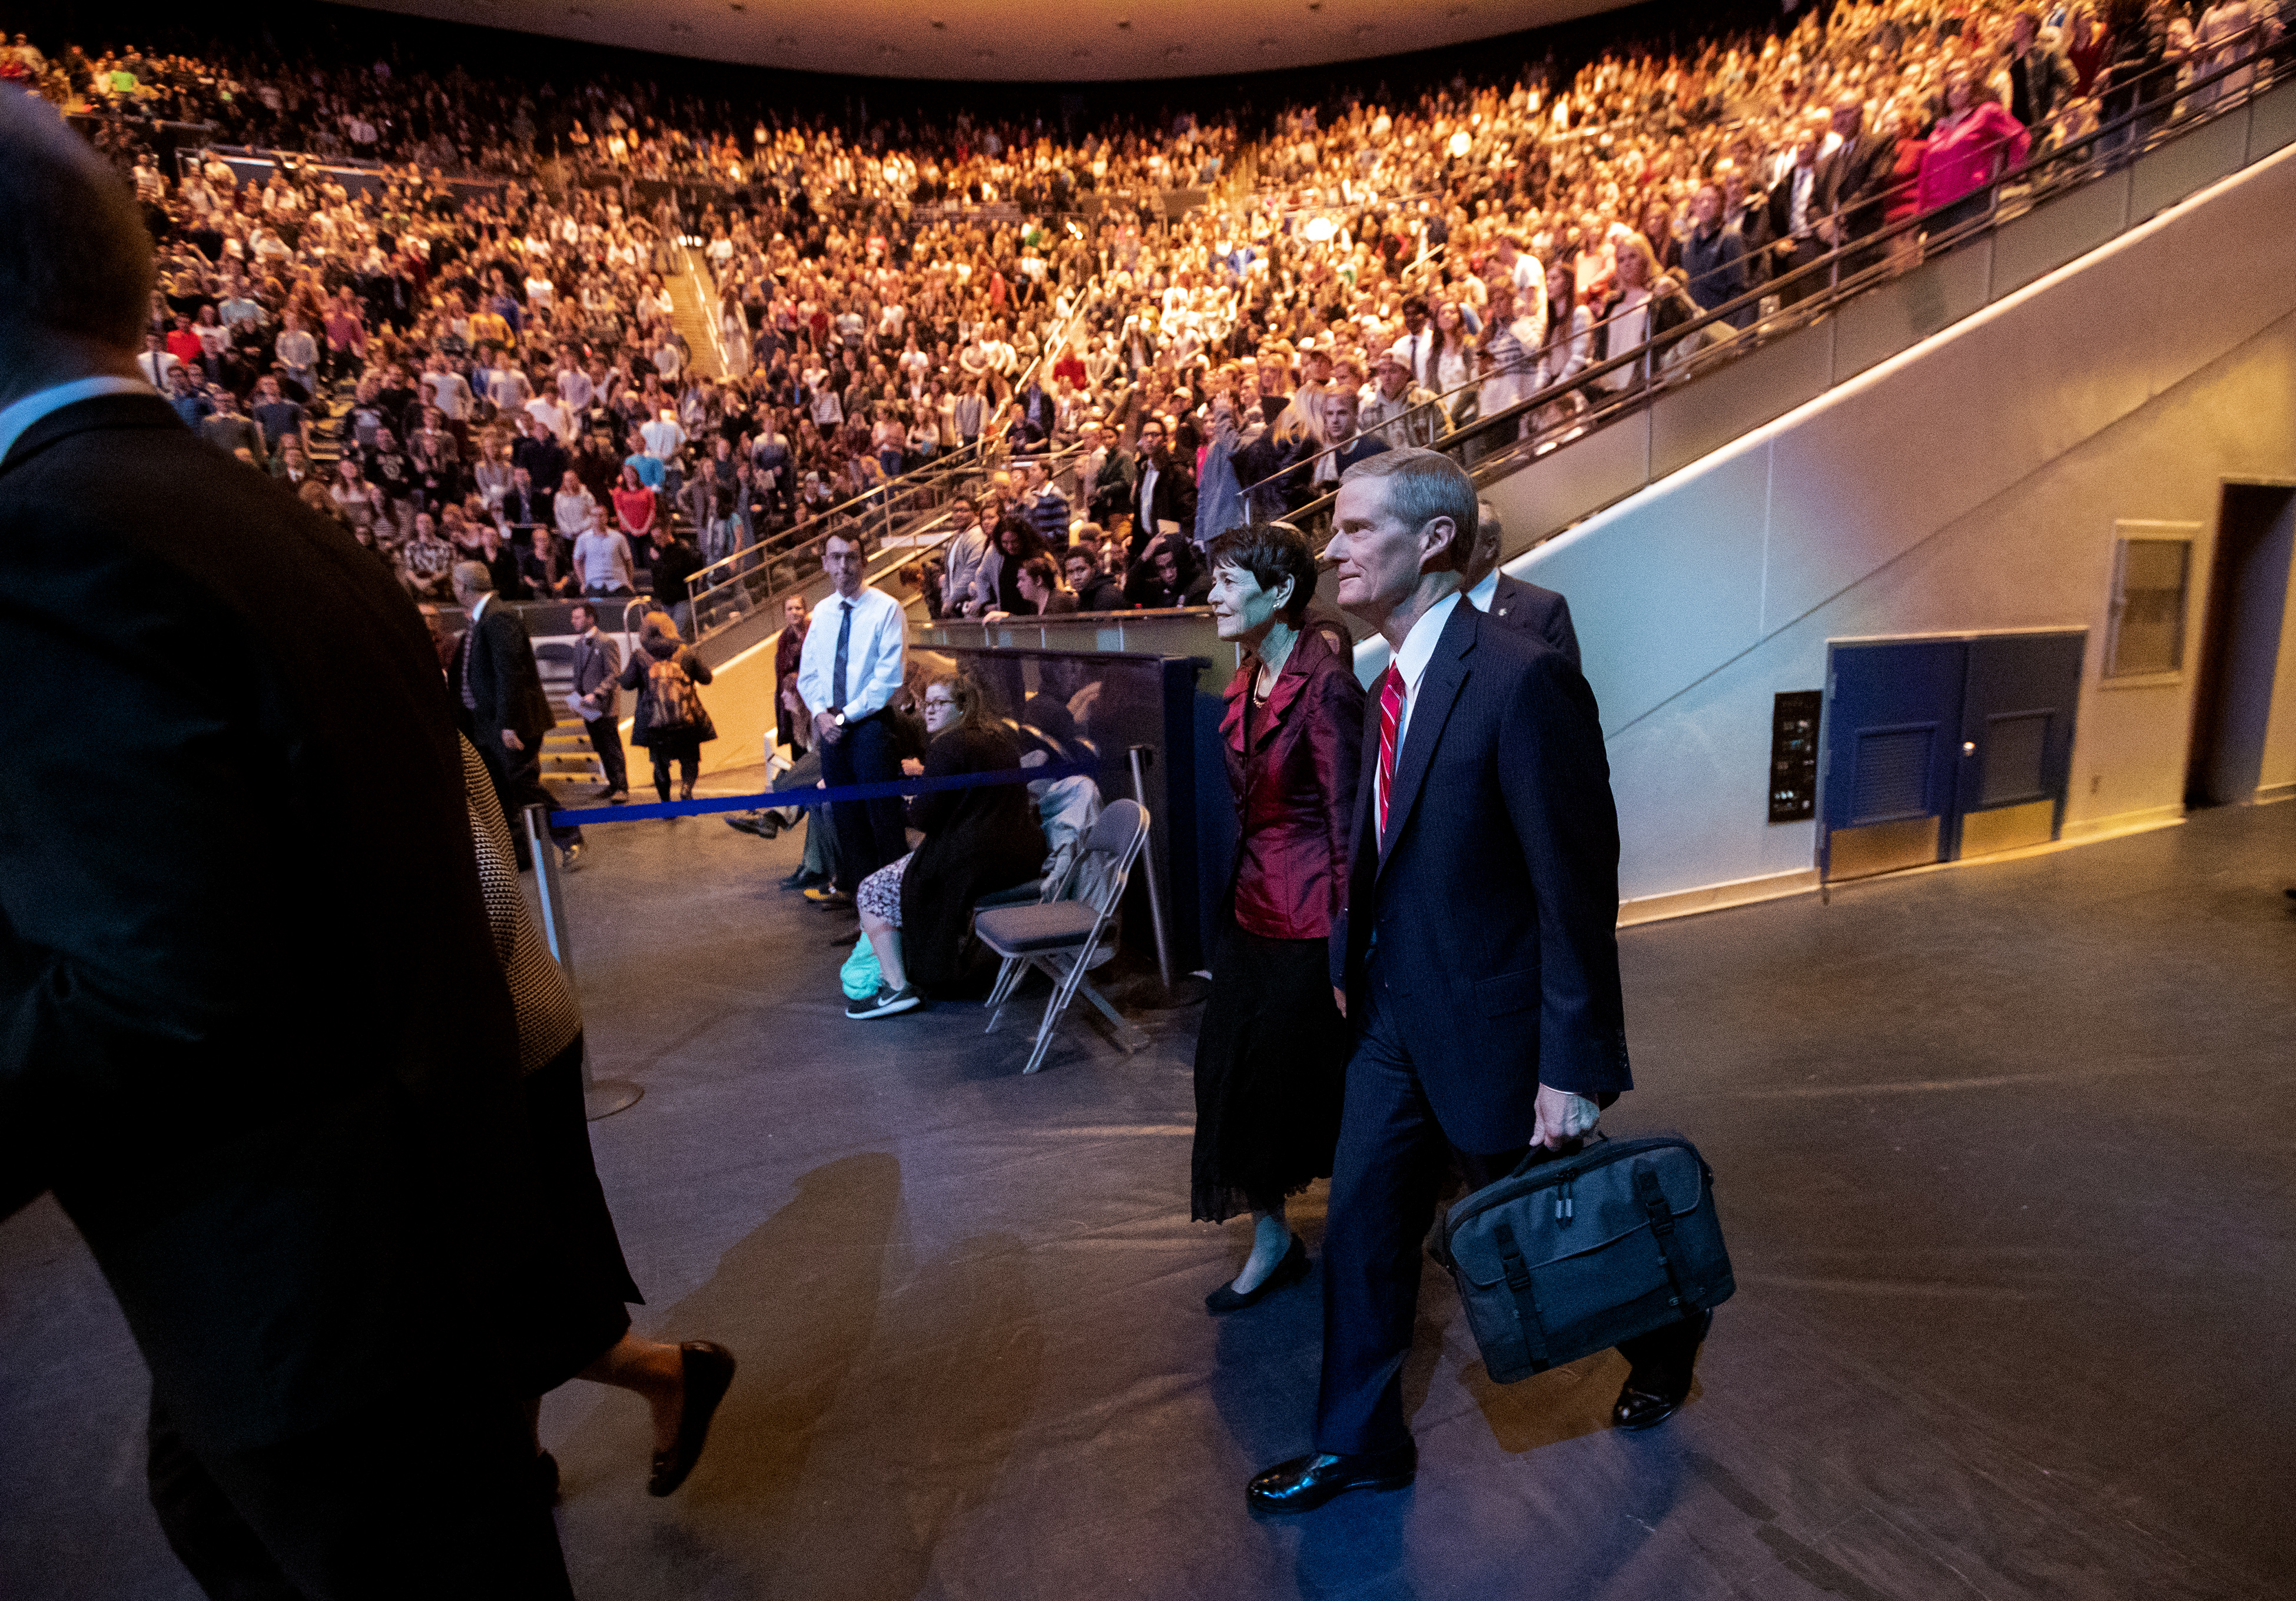 Elder David A. Bednar of the Quorum of the Twelve Apostles of The Church of Jesus Christ of Latter-day Saints and his wife, Sister Susan Bednar, enter the arena as they attend the campus devotional in the Marriott Center at BYU in Provo on Tuesday, Dec. 4, 2018.